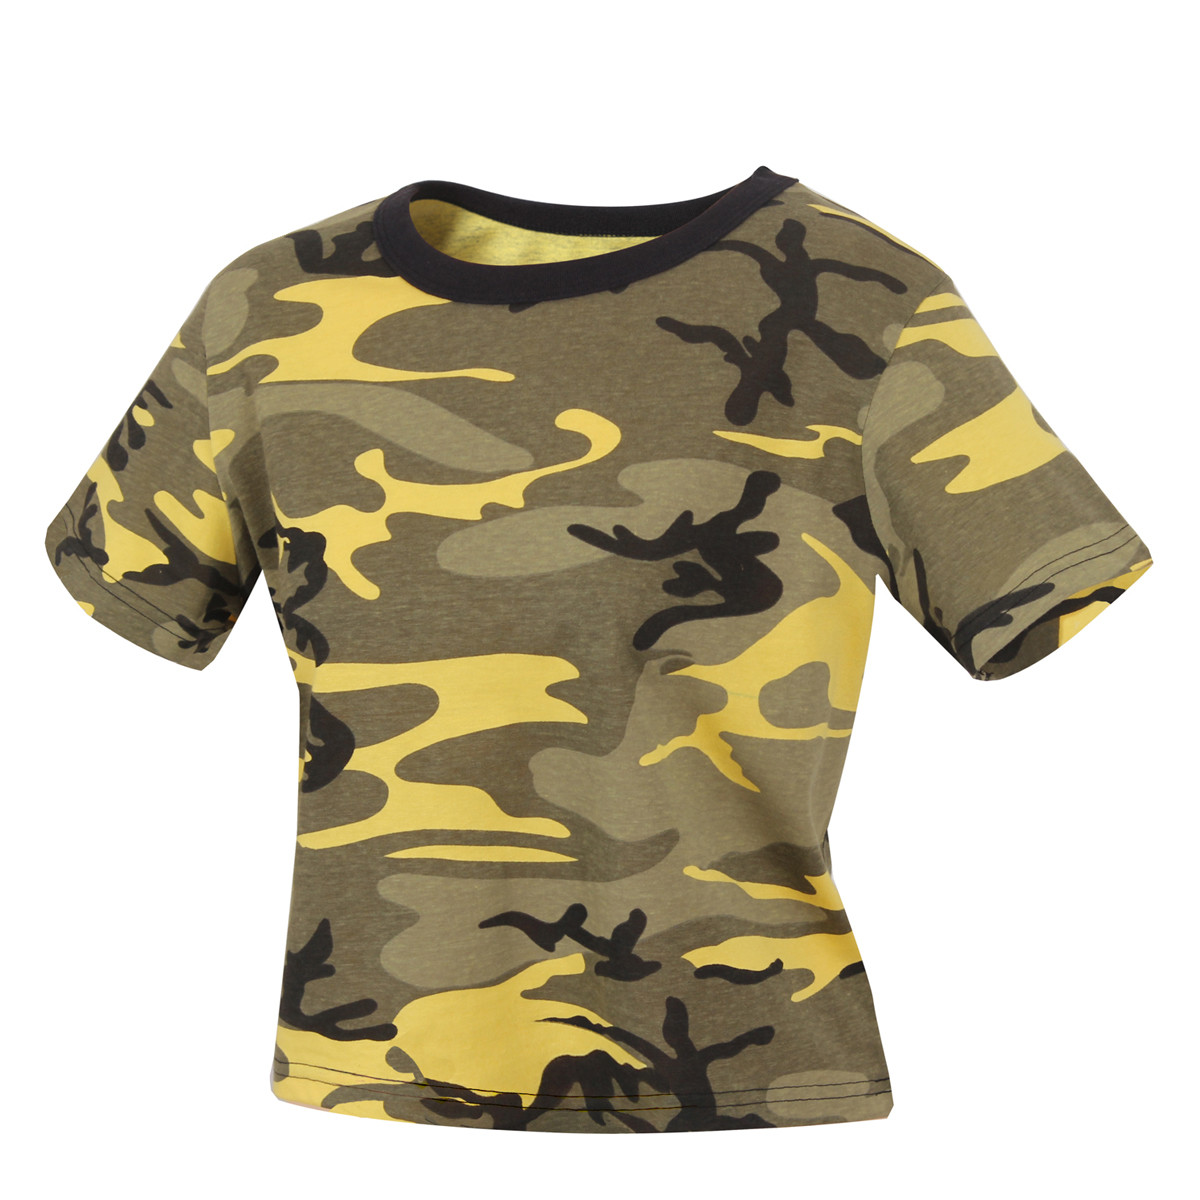 Shop Womens Crop Stinger Yellow Camo T s - Fatigues Army Navy Gear 281ba46f7b0